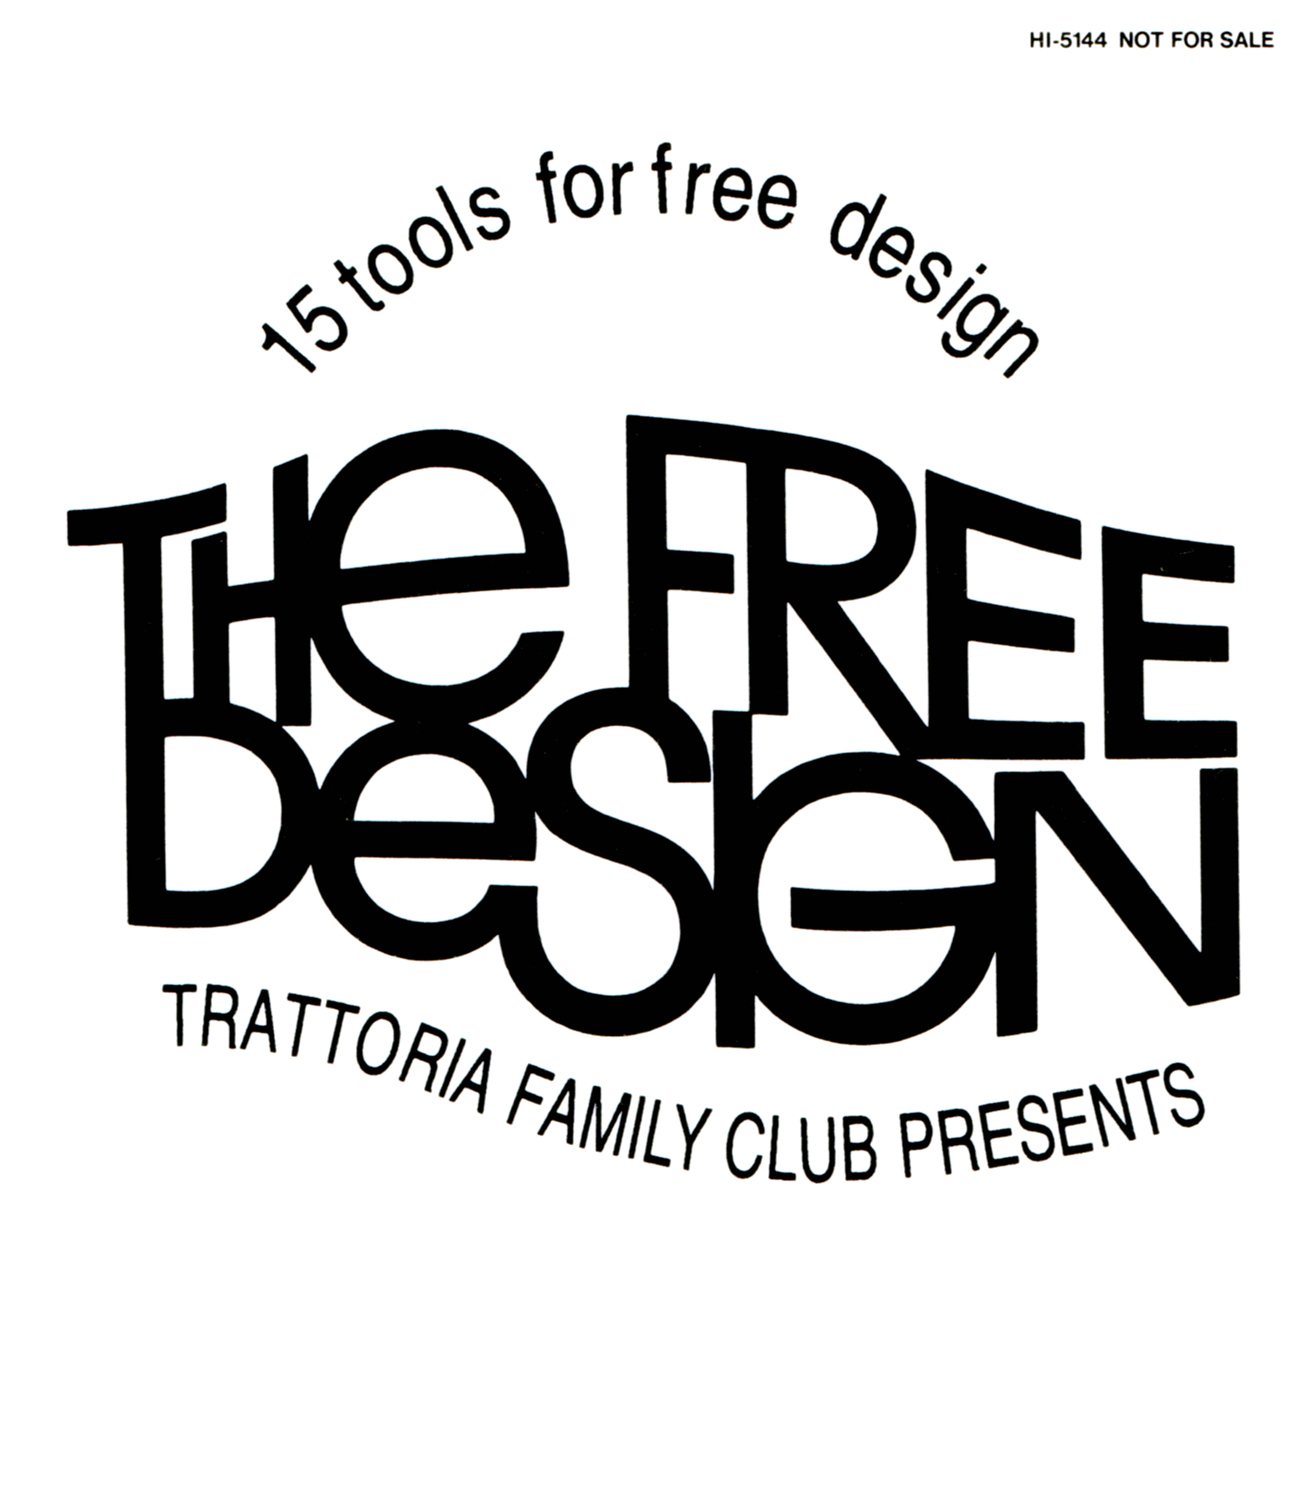 THE FREE DESIGN 「15 tools for free design」のジャケット画像